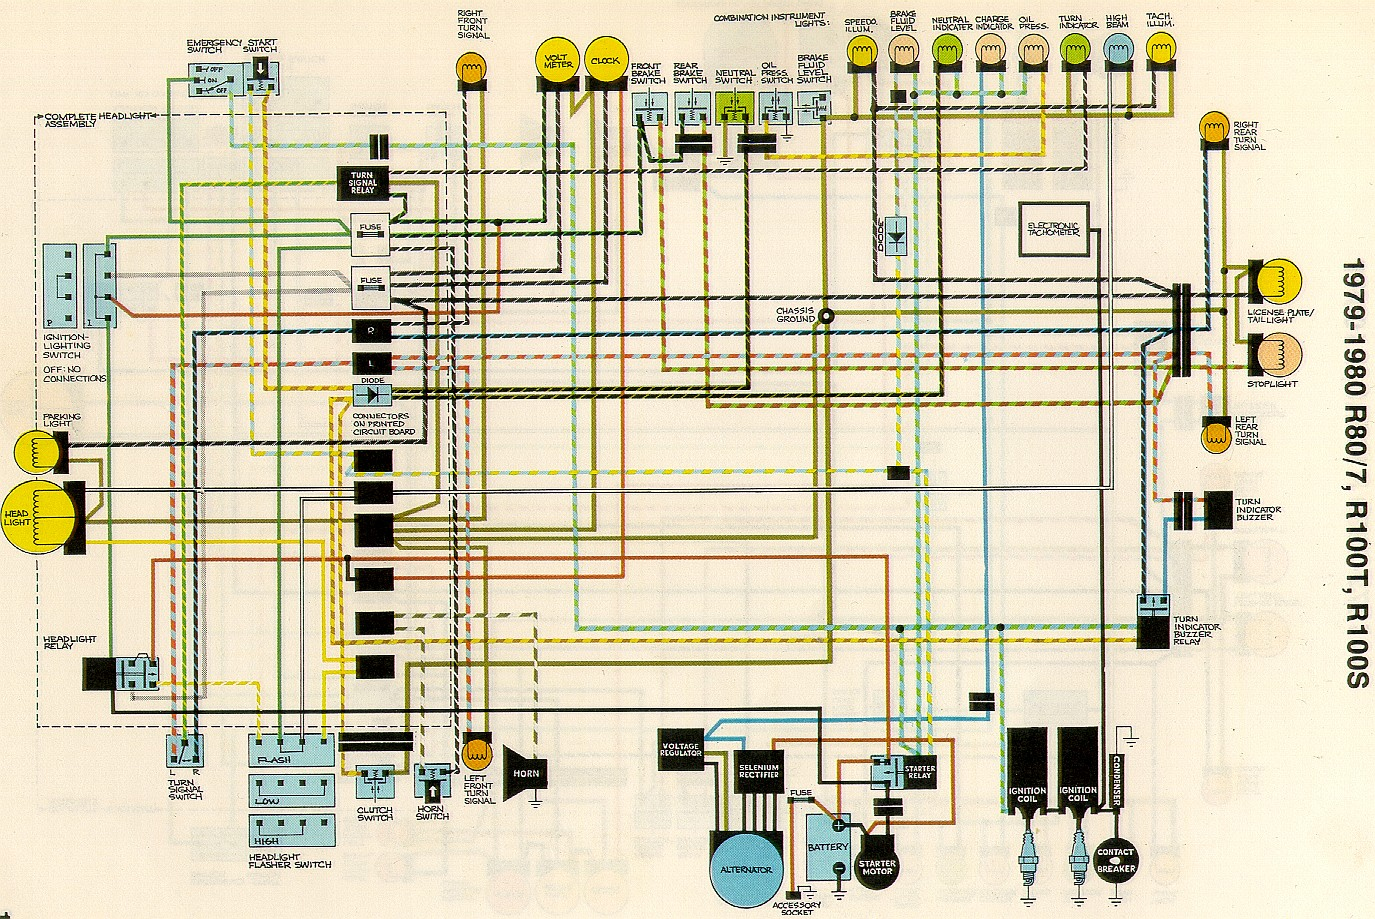 79 5 united articles wiring diagrams bmw r100rs gauge wiring diagram at honlapkeszites.co